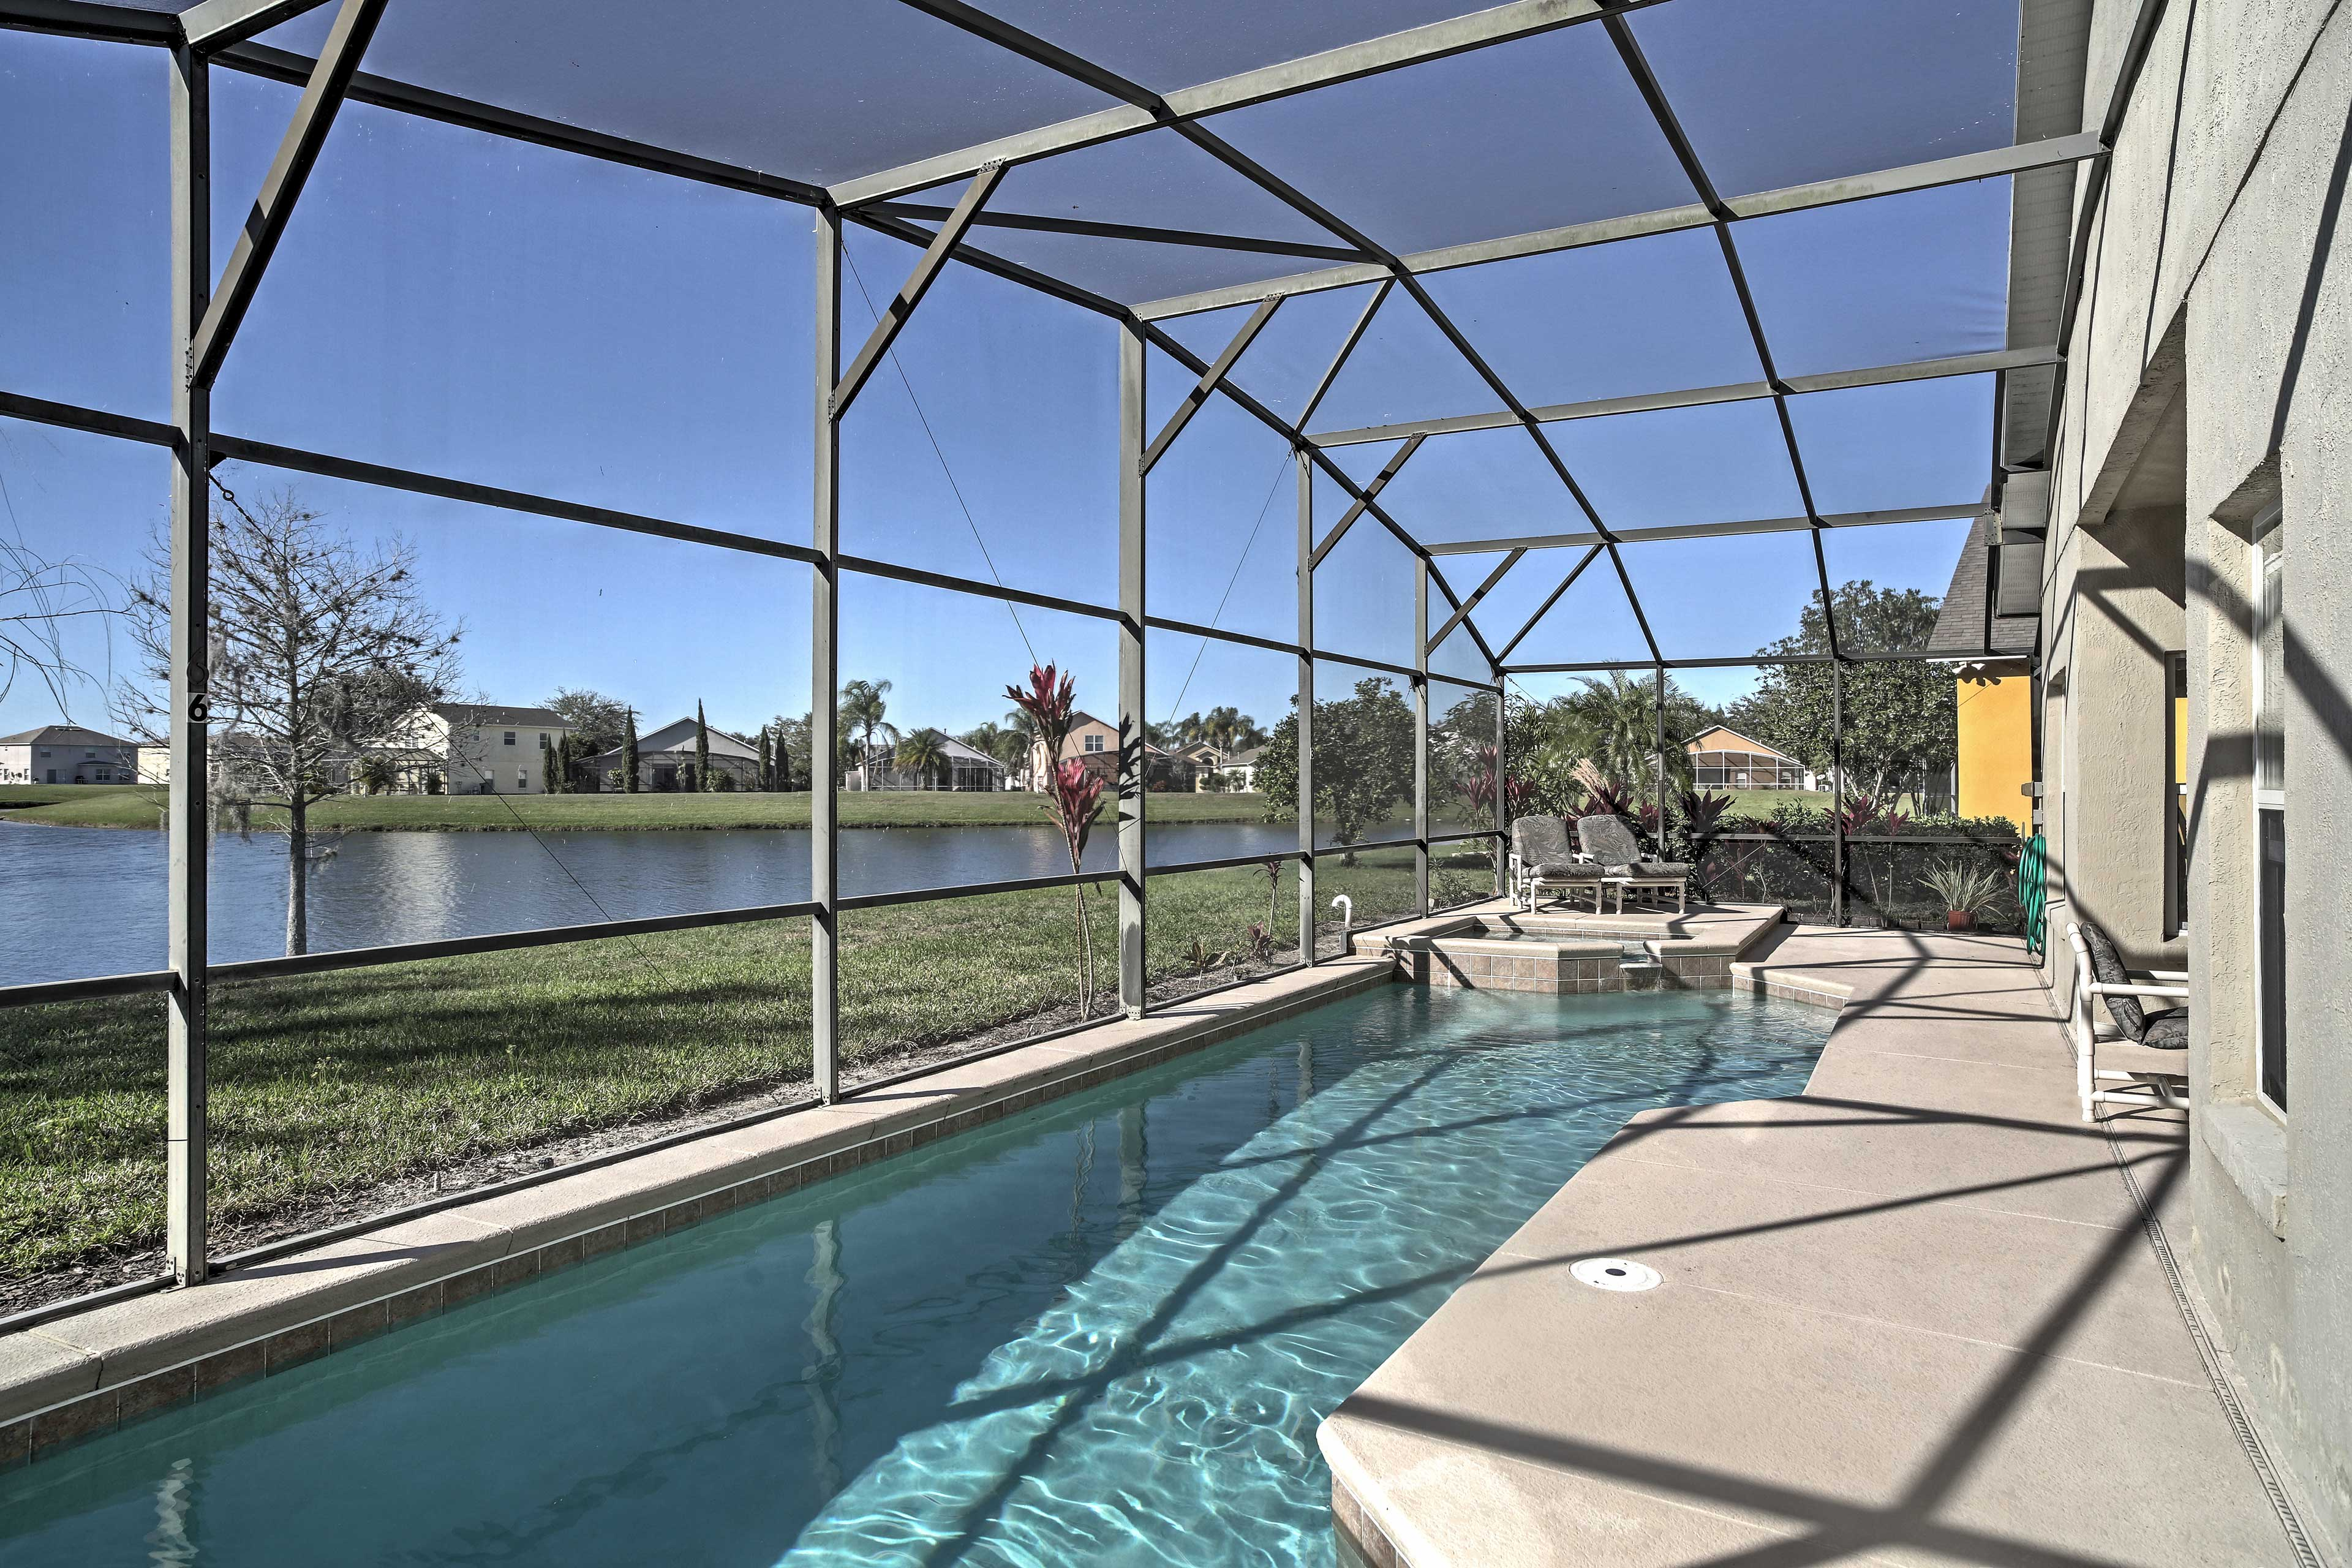 The pool can be heated for an additional nightly fee that's paid pre-trip.